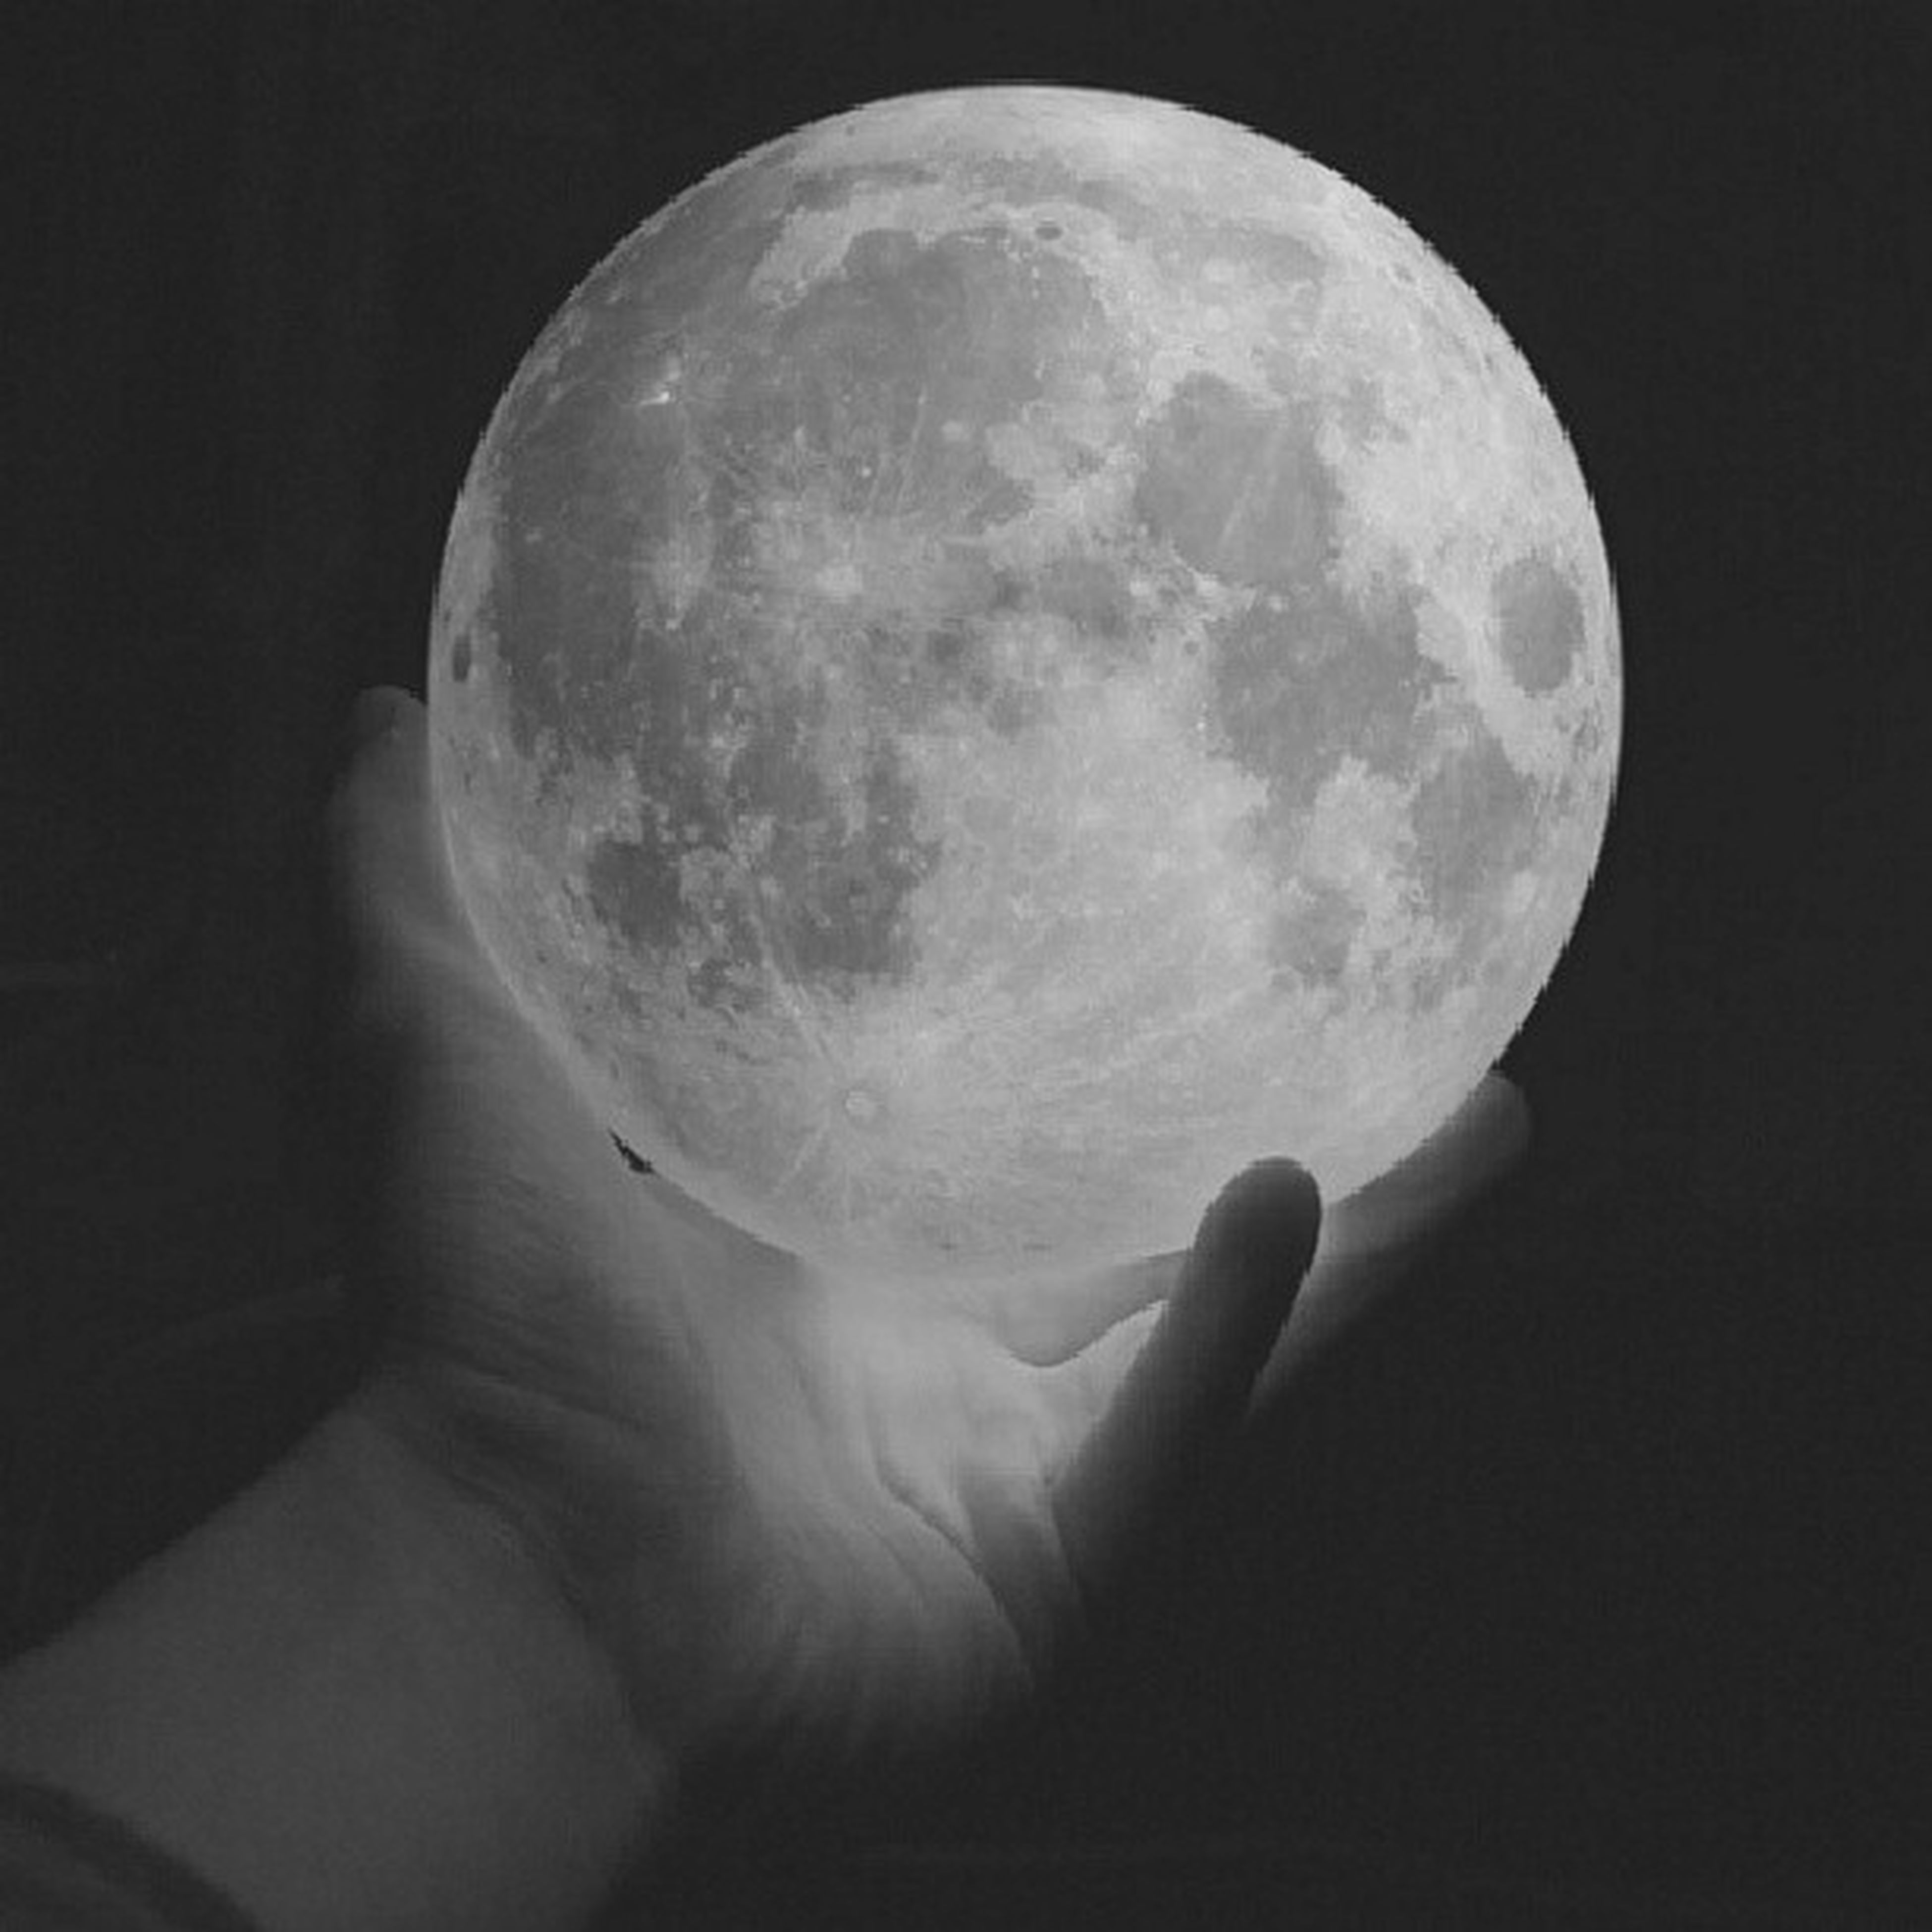 sphere, moon, astronomy, discovery, night, circle, moon surface, sky, full moon, planetary moon, close-up, low angle view, space exploration, exploration, one person, copy space, nature, shape, person, beauty in nature